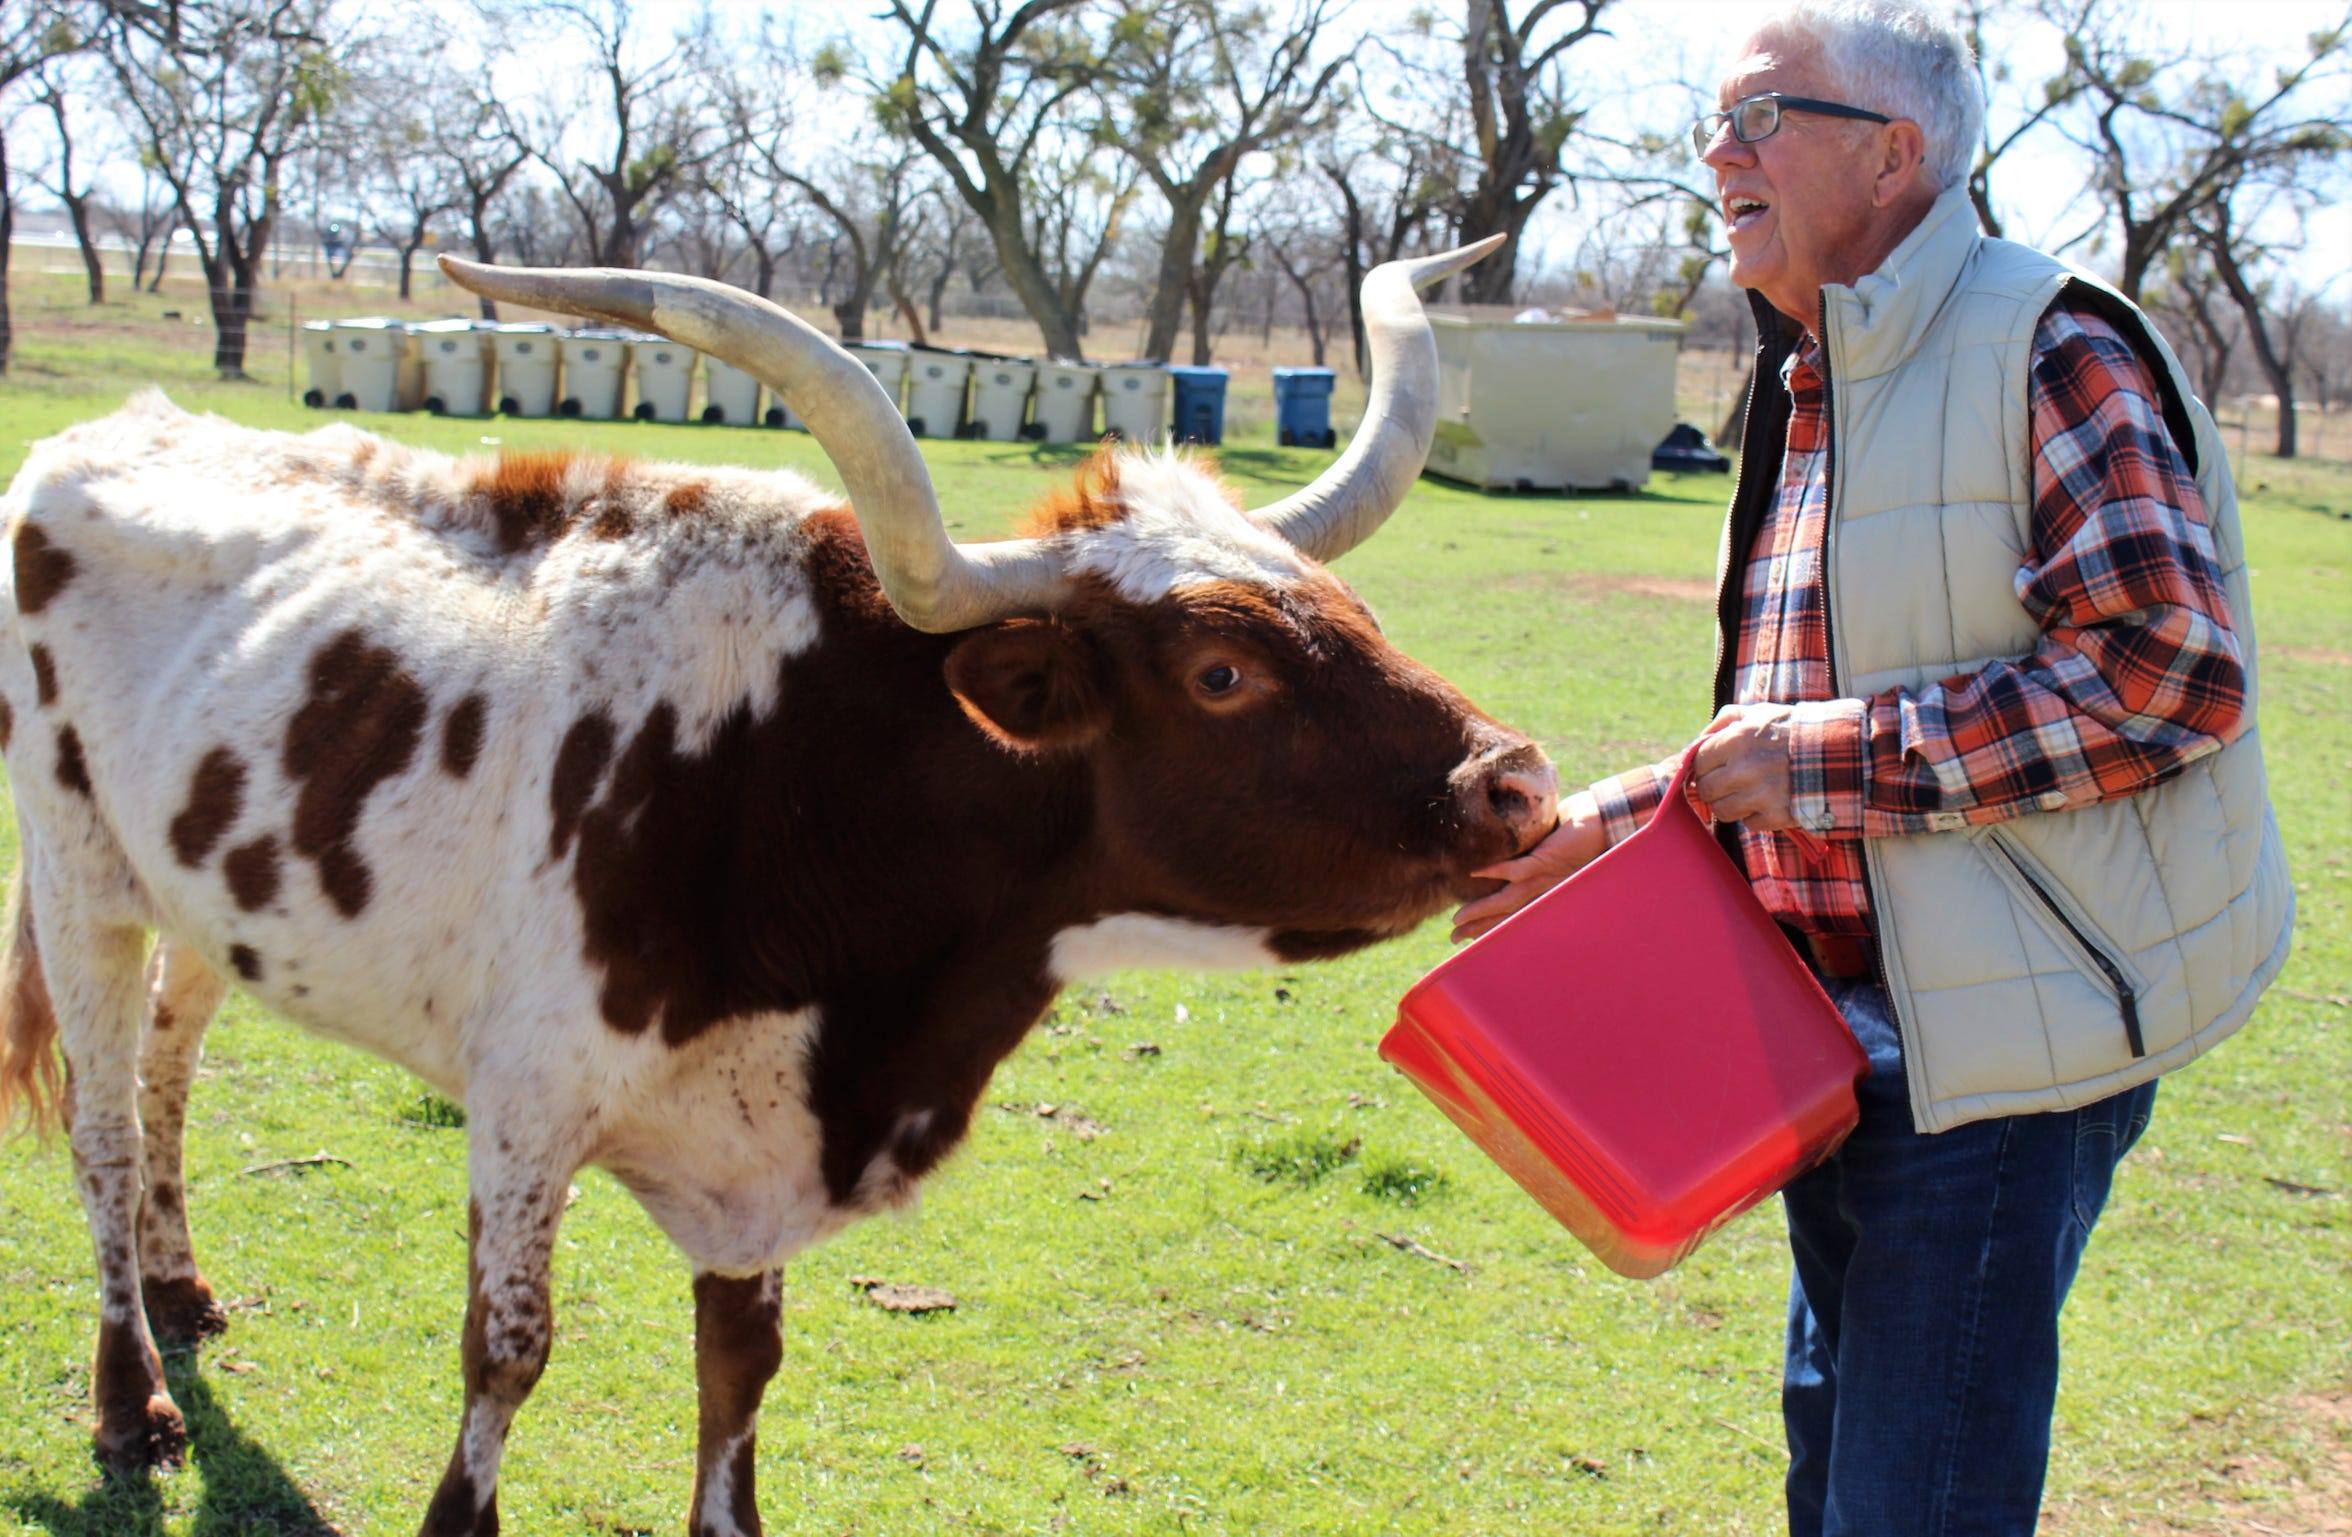 Bishop Powell feeds a longhorn at the Back Porch of Texas. The father of Outlaws & Legends Music Fest founder Mark Powell, he mows, cuts tree limbs and feeds an assortment of animals at the northwest Abilene site.